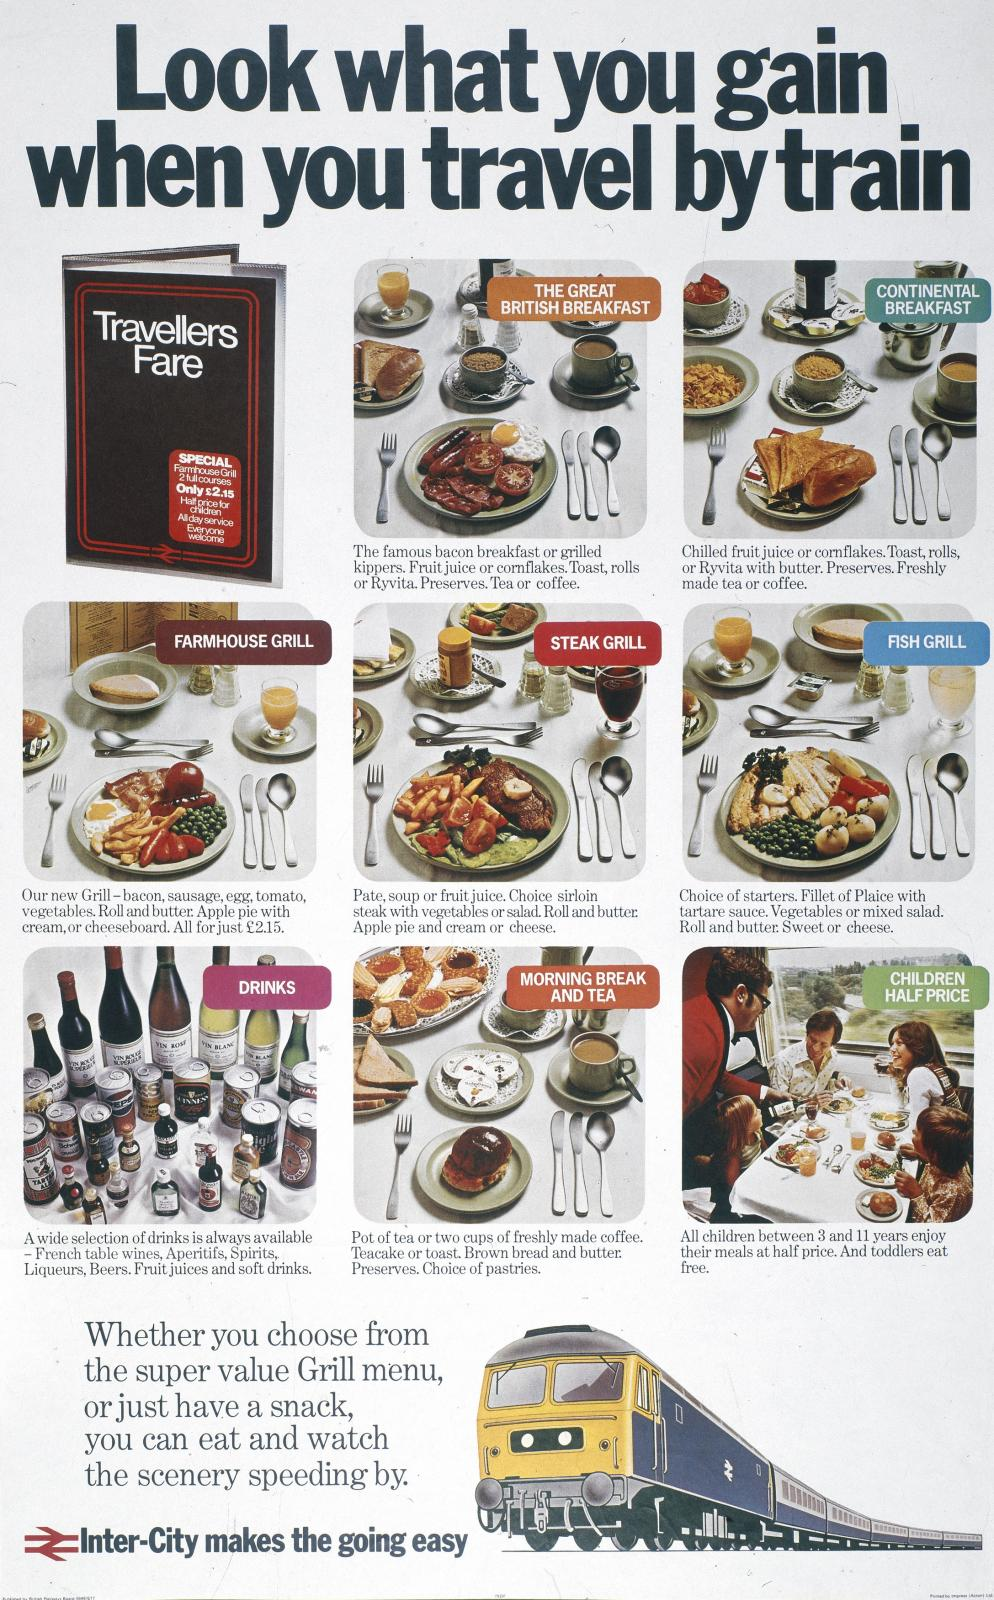 british-rail-poster-showing-the-full-range-of-meals-and-snacks-offered-by-travellers-fare-on-inter-city-trains.jpg